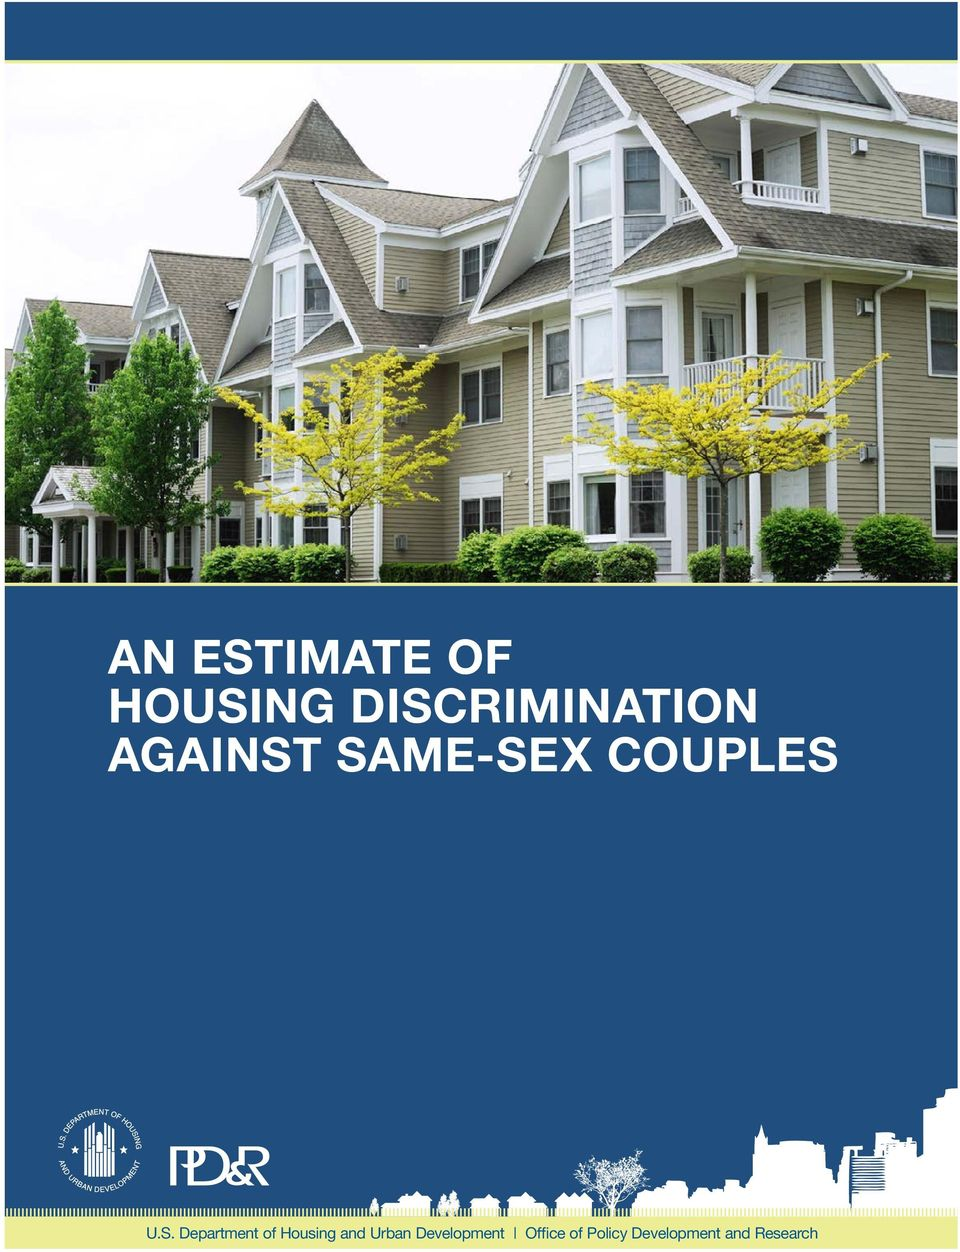 SAME-SEX COUPLES U.S. Department of